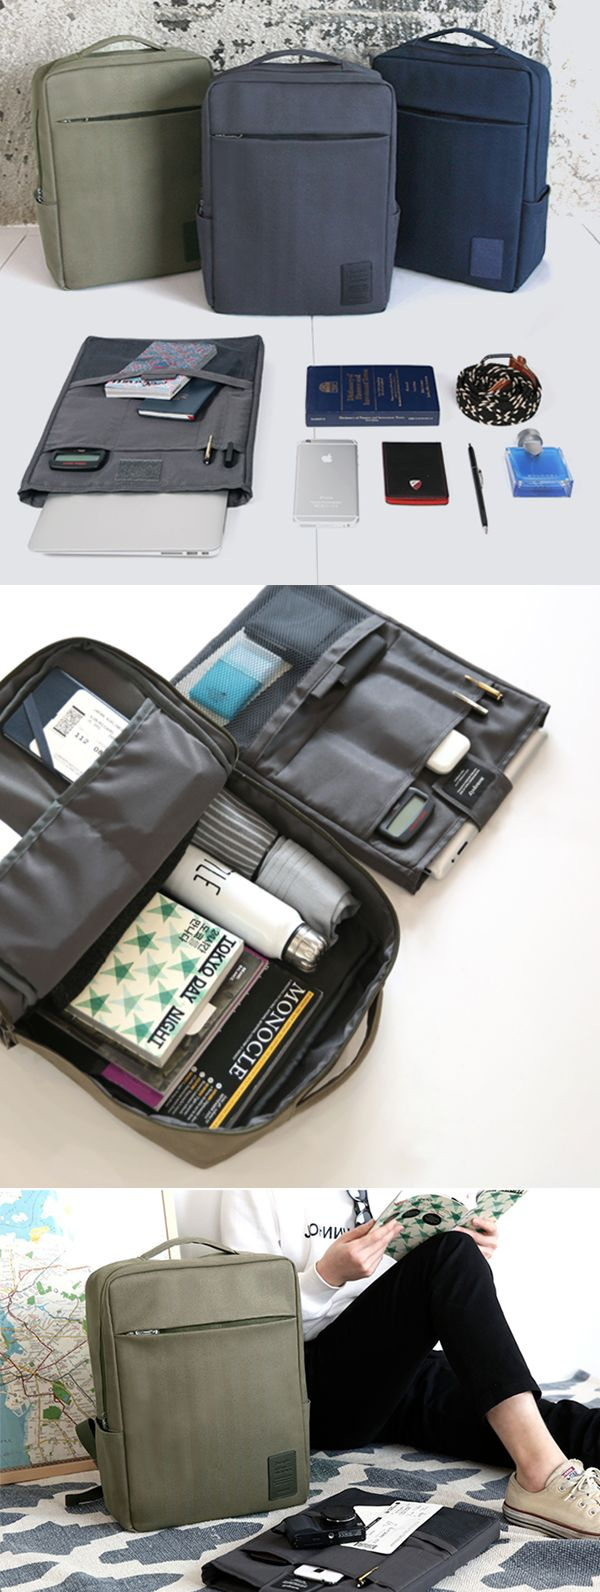 """It is a functional backpack with a modern design making it great regardless of age and gender! With the spacious compartments and a super useful organizer insert, you can store many items along with your electronic devices, even up to 17"""" laptop! The backpack features top handles and padded shoulder straps allowing you to carry the backpack with comfort and ease."""